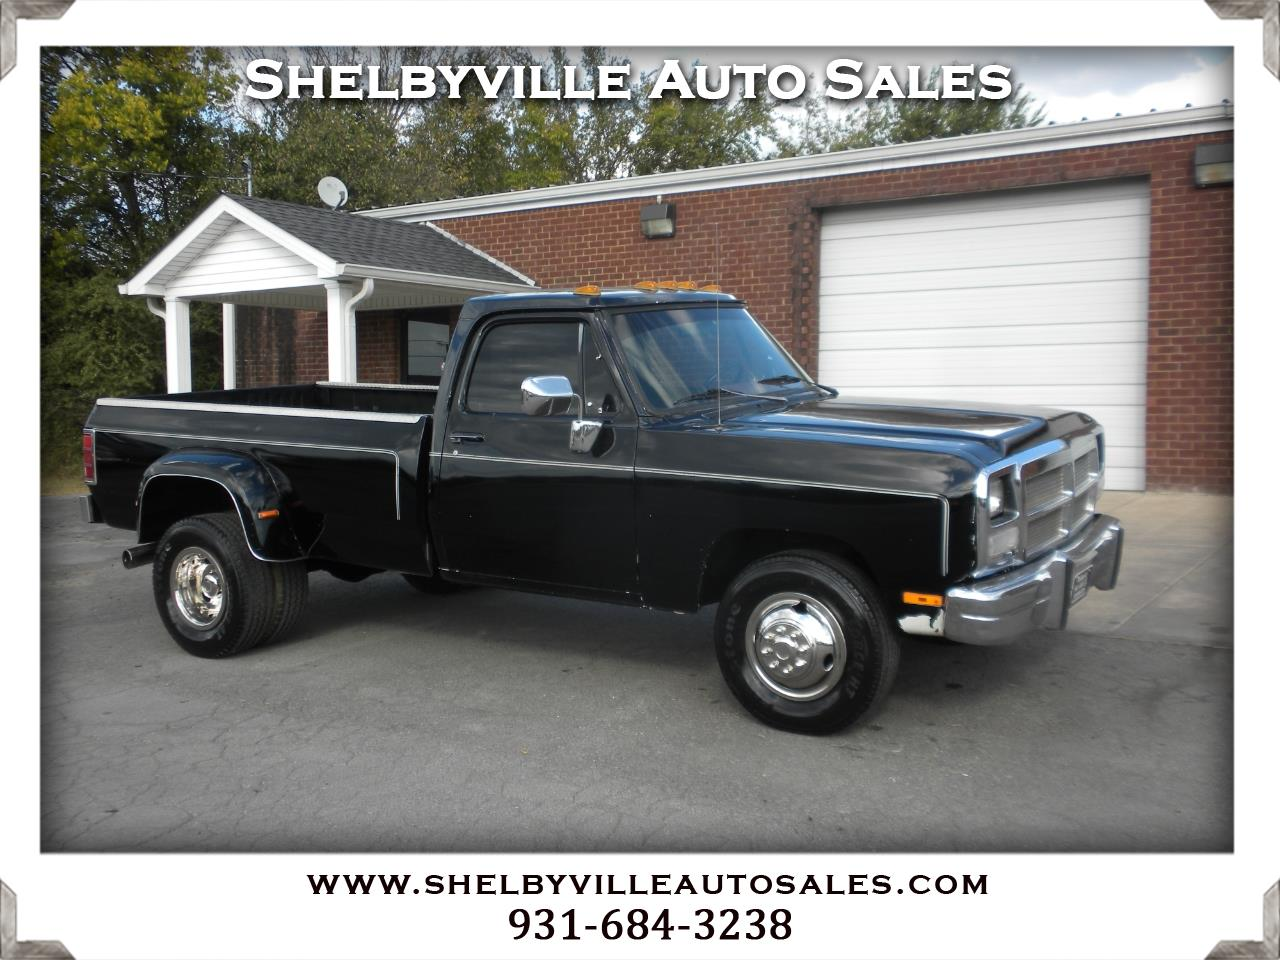 Shelbyville Auto Sales >> Used Cars For Sale Shelbyville Tn 37160 Shelbyville Auto Sales